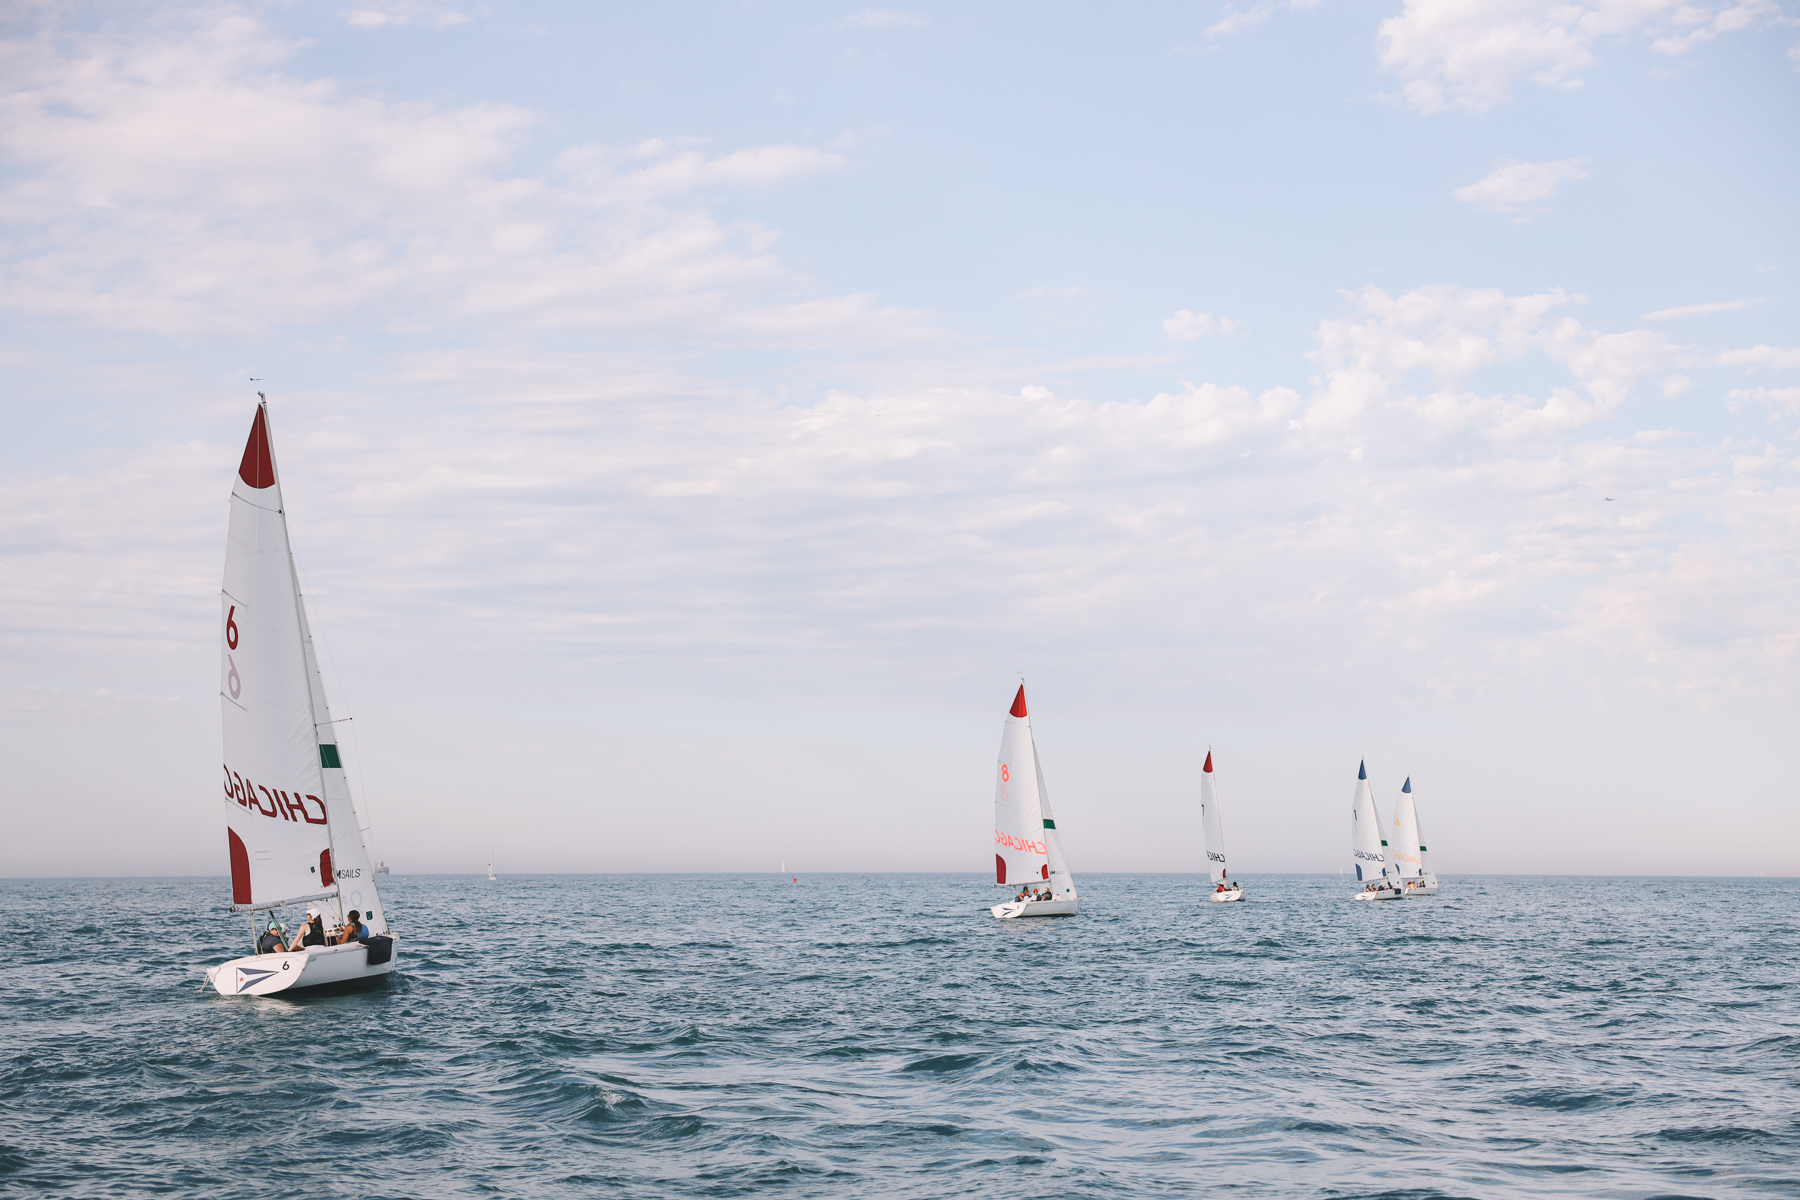 Sailing Lake Michigan in Chicago Experience with Kids